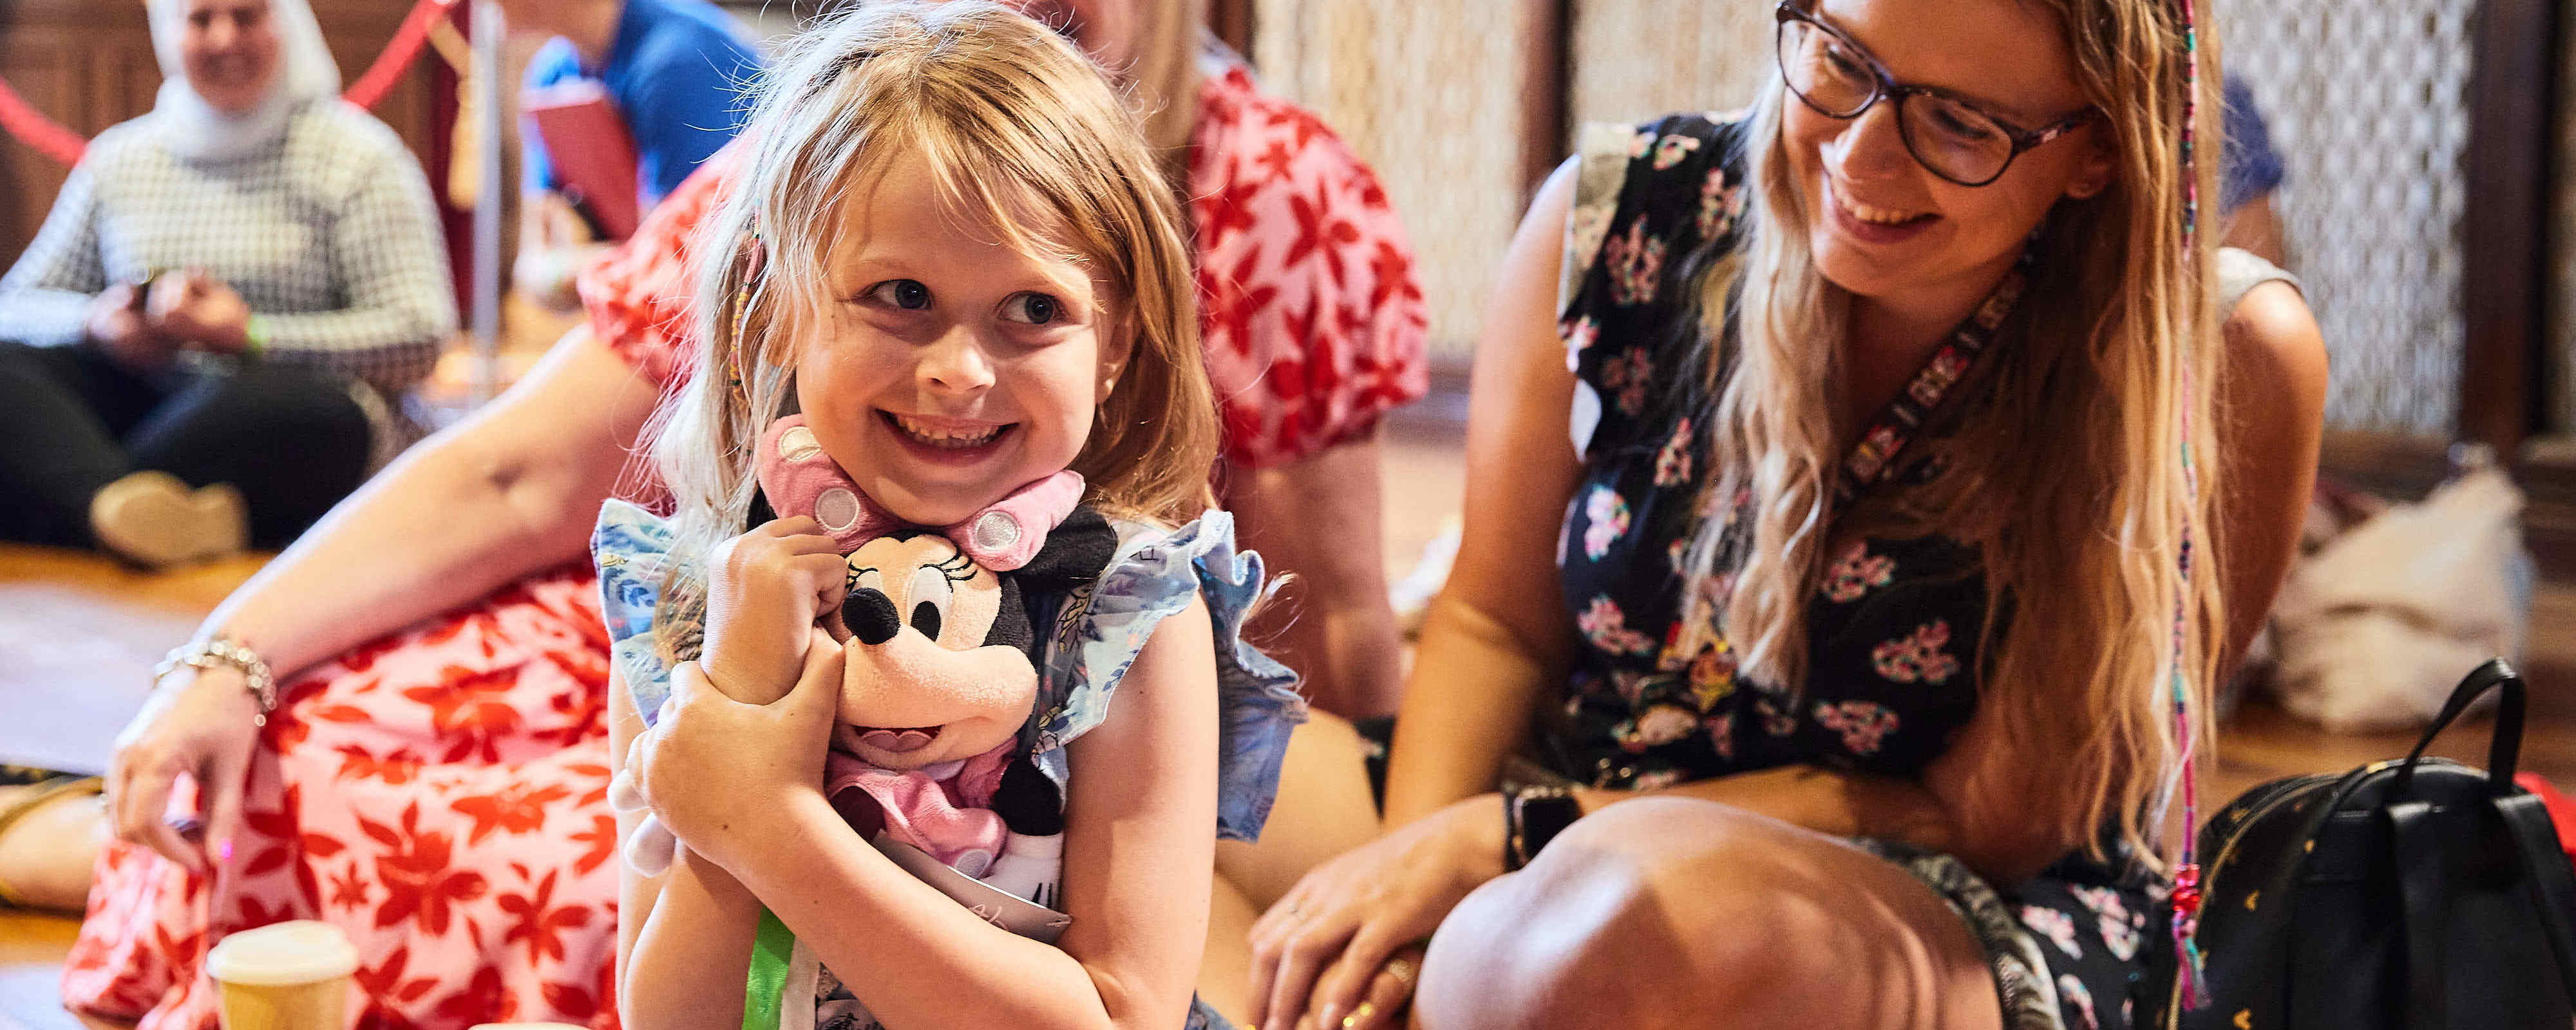 Young girl at the Wish Event with a Minnie Mouse plush